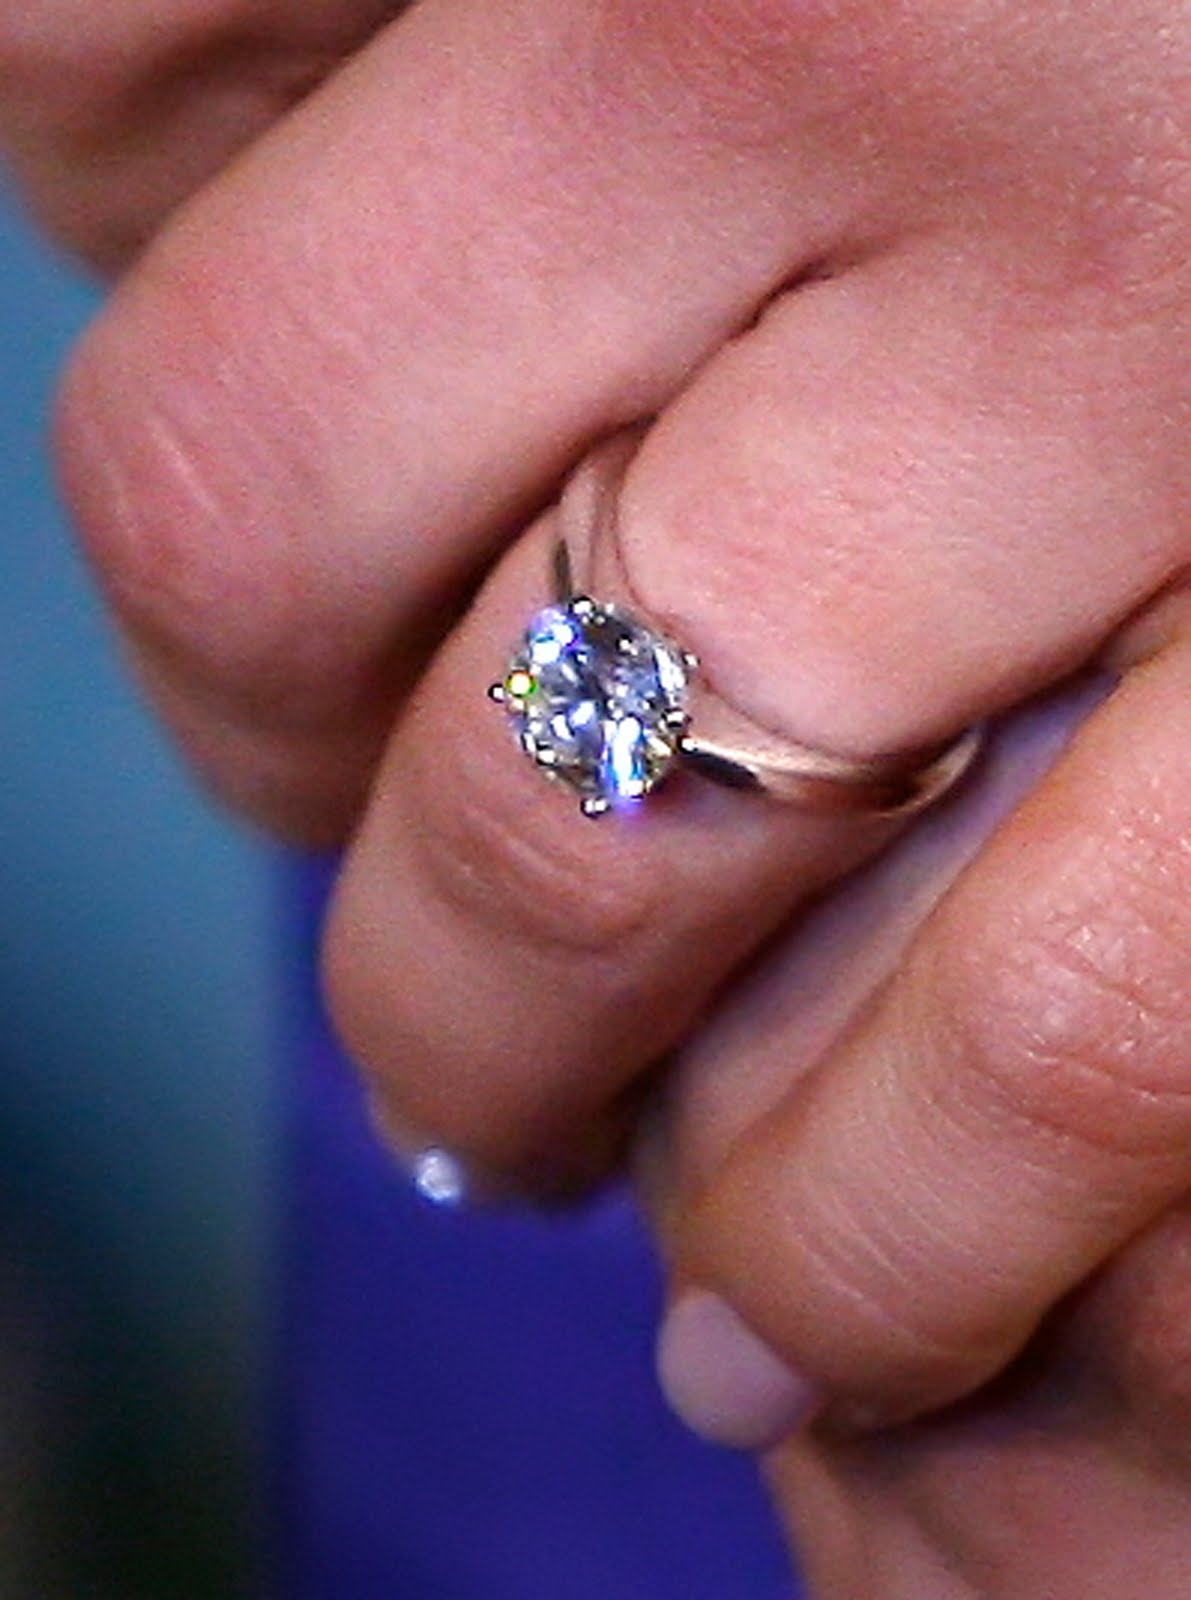 swedish royal engagement rings crown wedding rings Daniel gave Victoria a white gold engagement ring